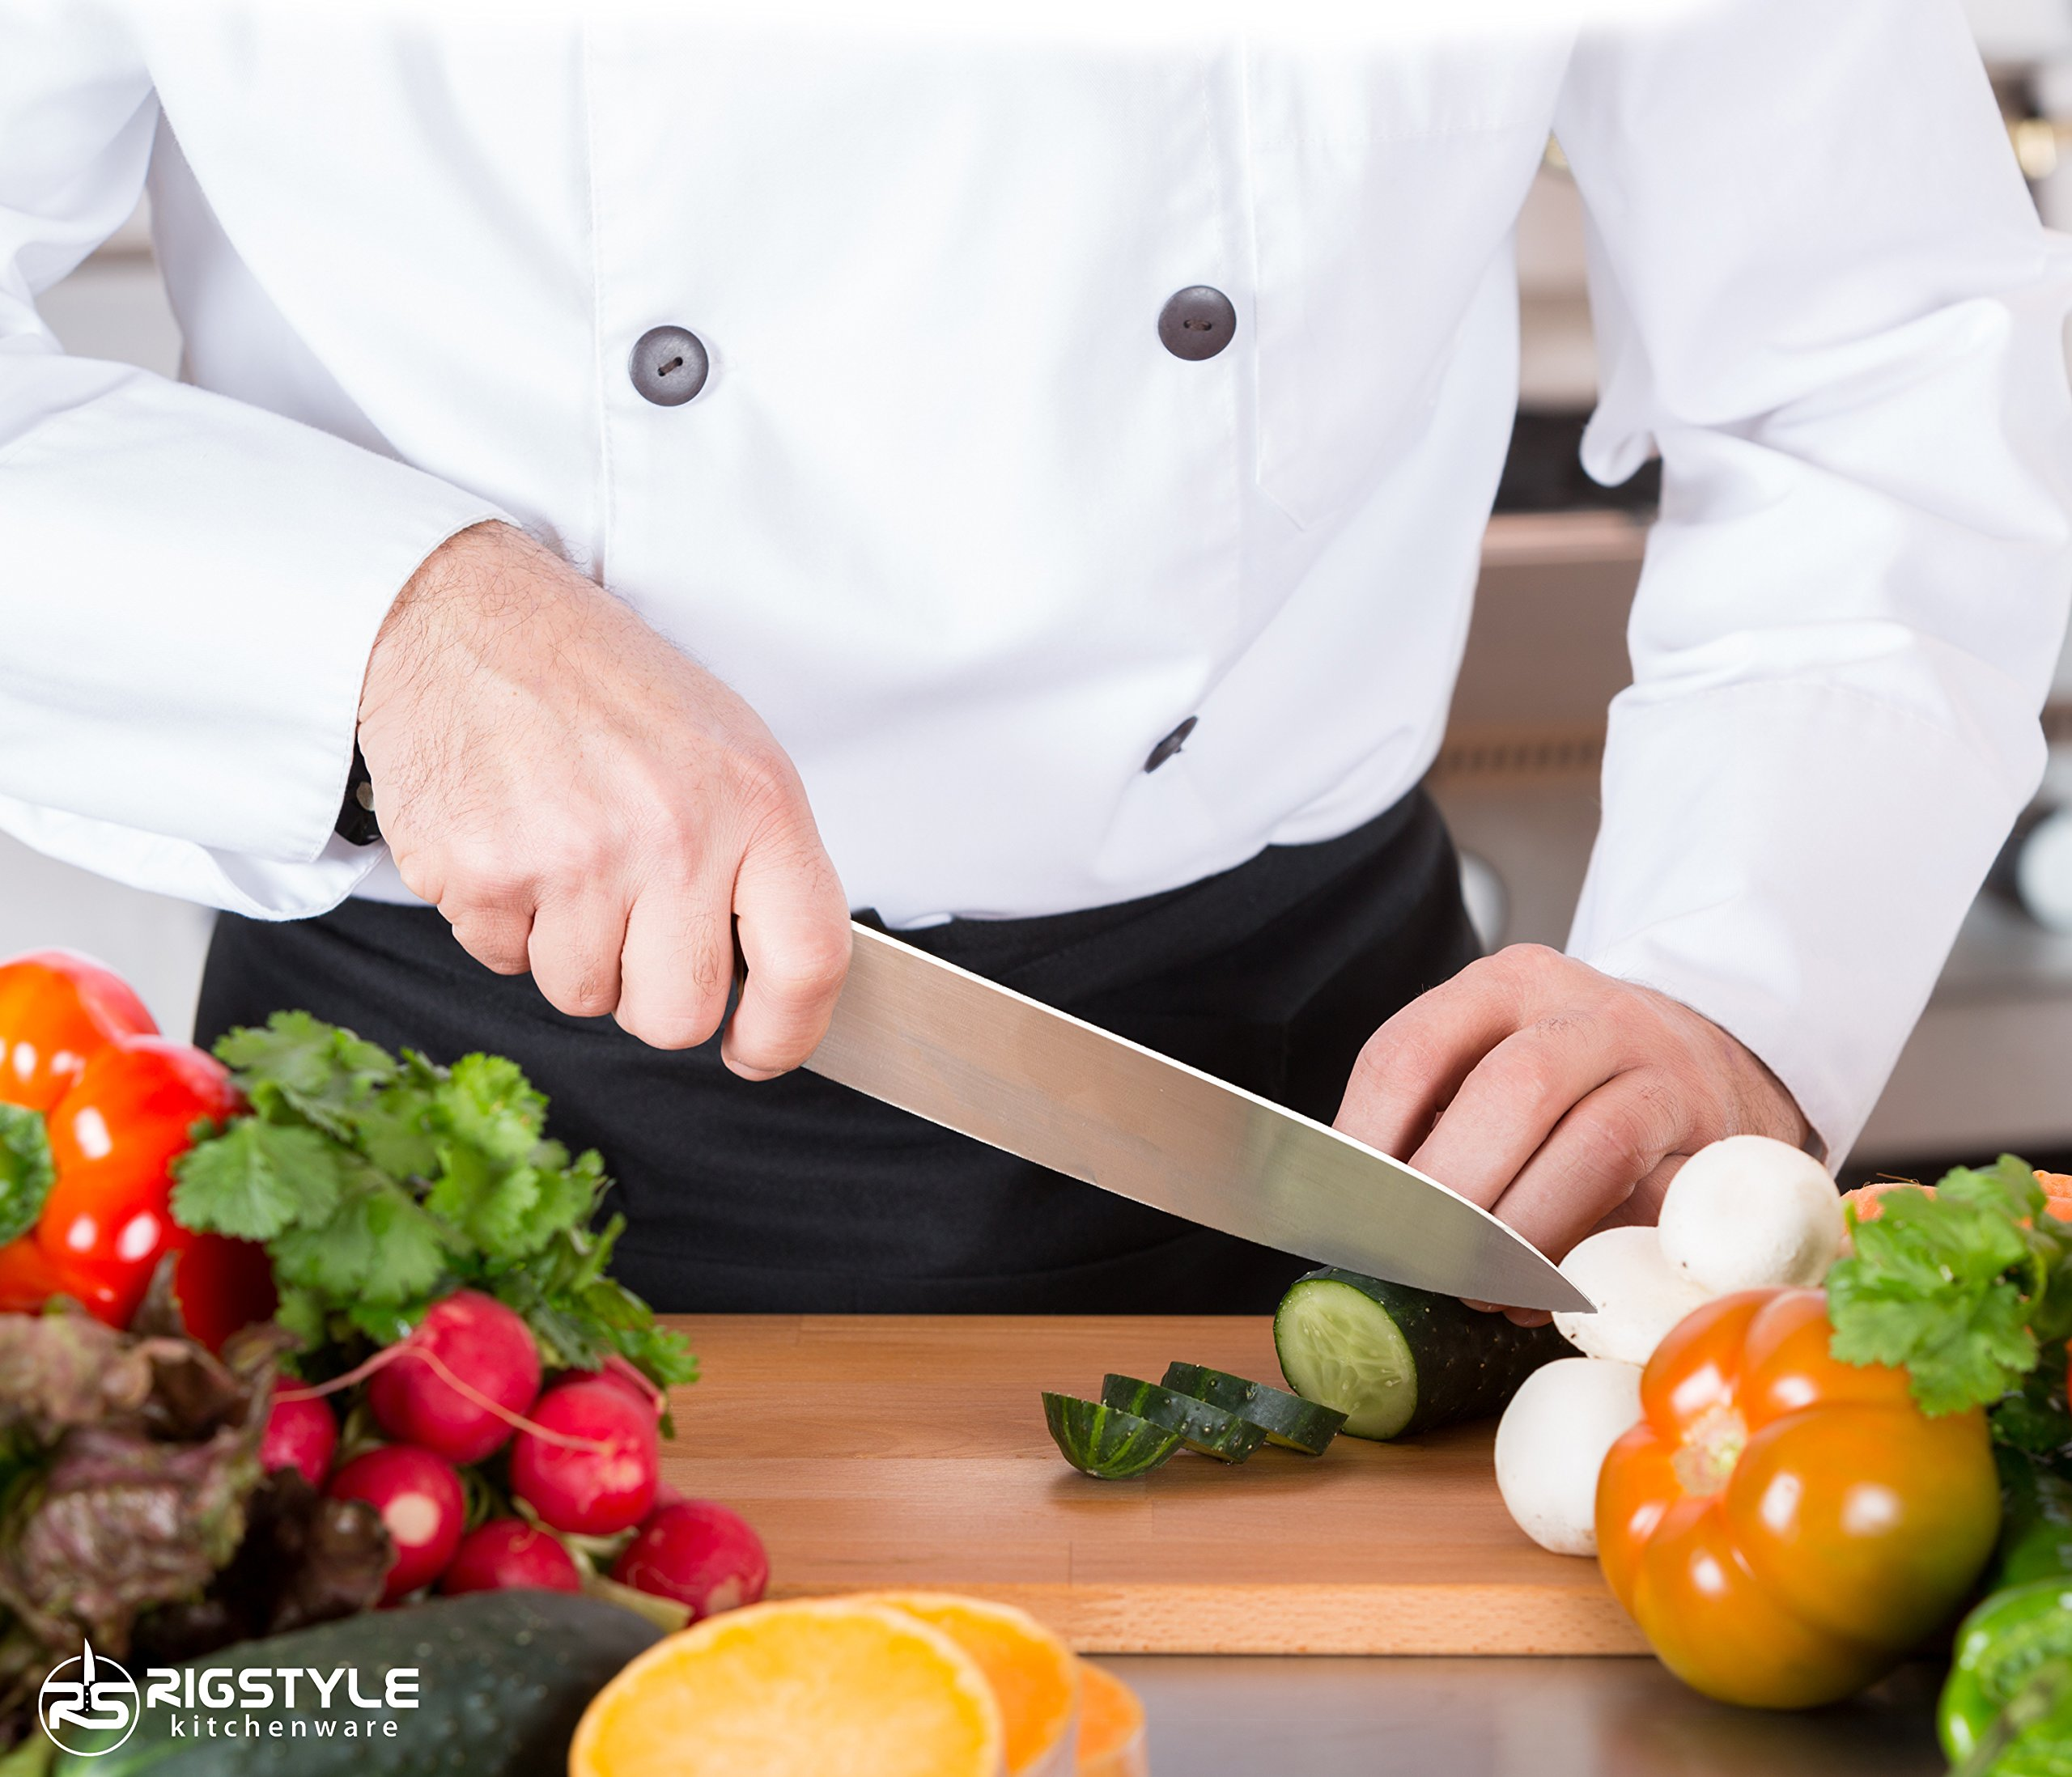 RIGSTYLE German Chef Knife 8 inch, High Carbon Stainless Steel, Sharp Blade with Ergonomic Handle for Professional Restaurants & Home Kitchens, Meat, Fish, Chicken & Vegetables Chopper, with Gift Box by RIGSTYLE (Image #4)